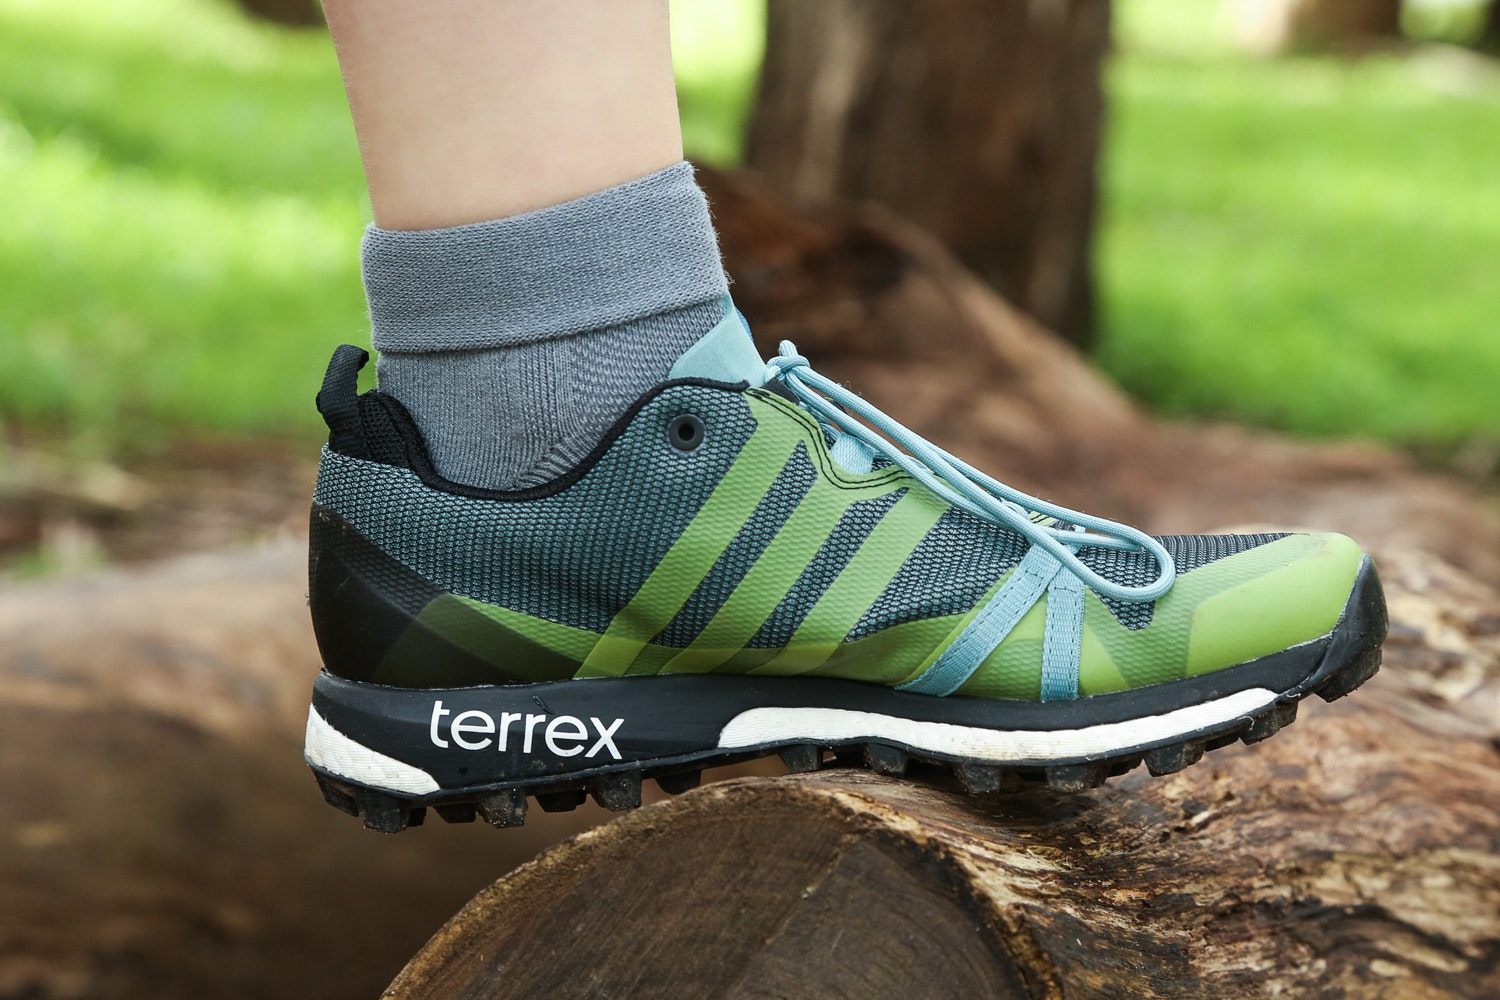 Adidas Terrex Agravic Shoes